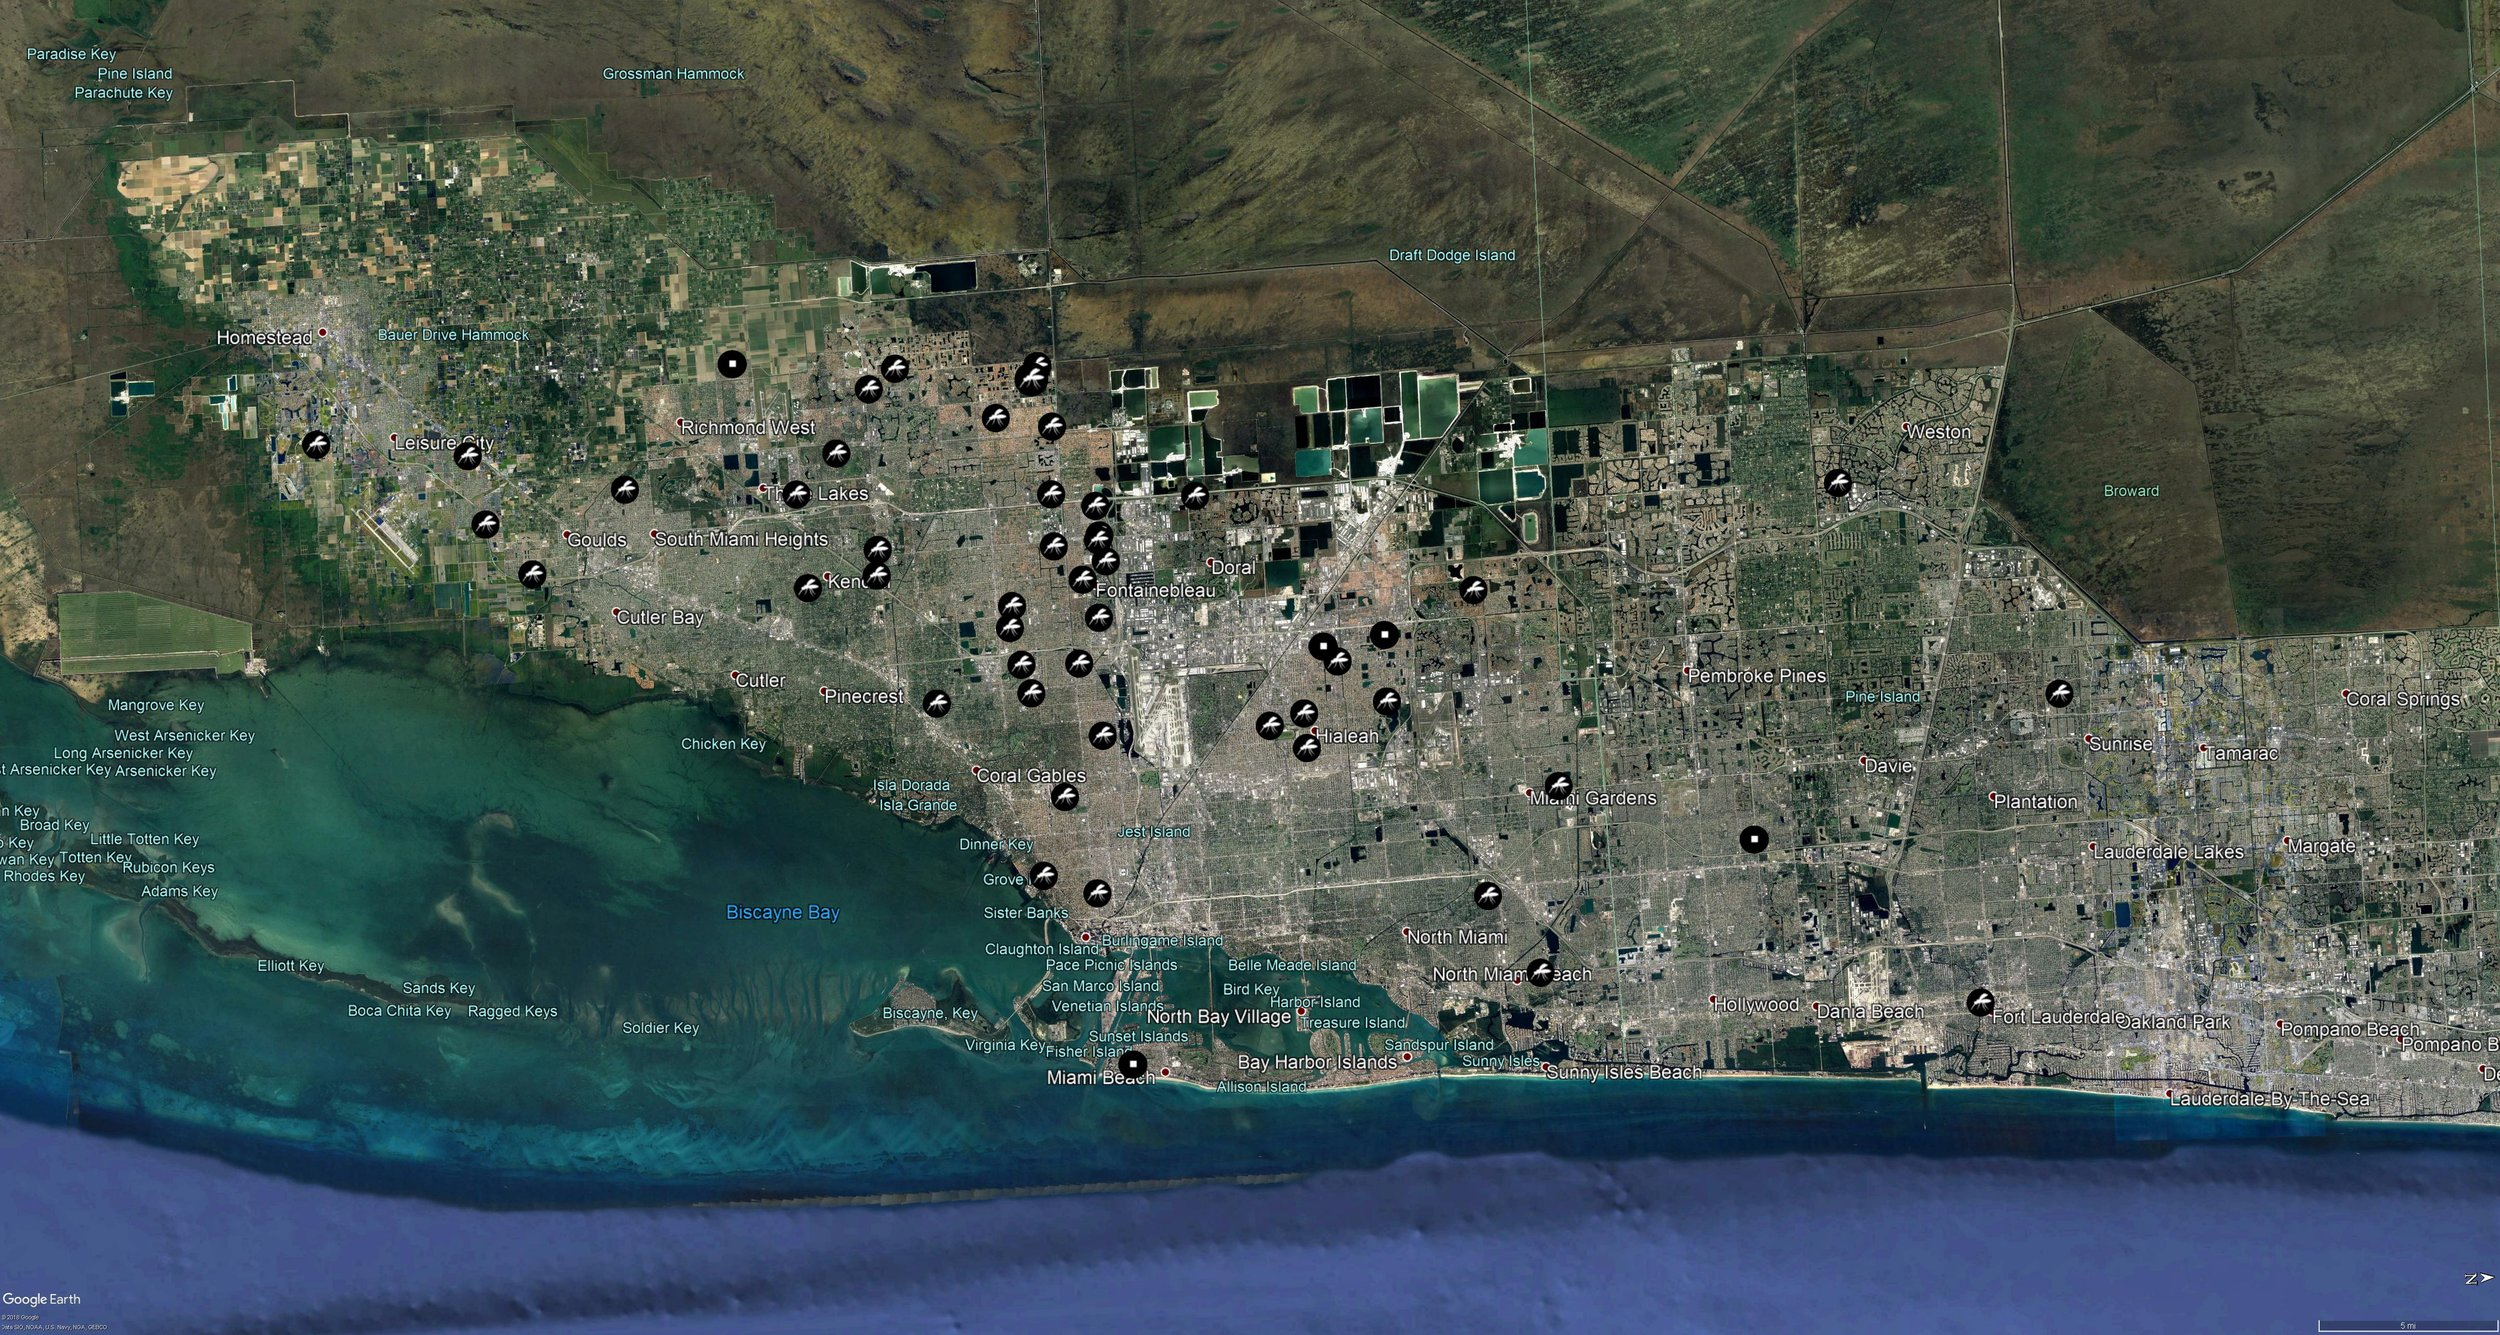 Map of field collection site in South Florida